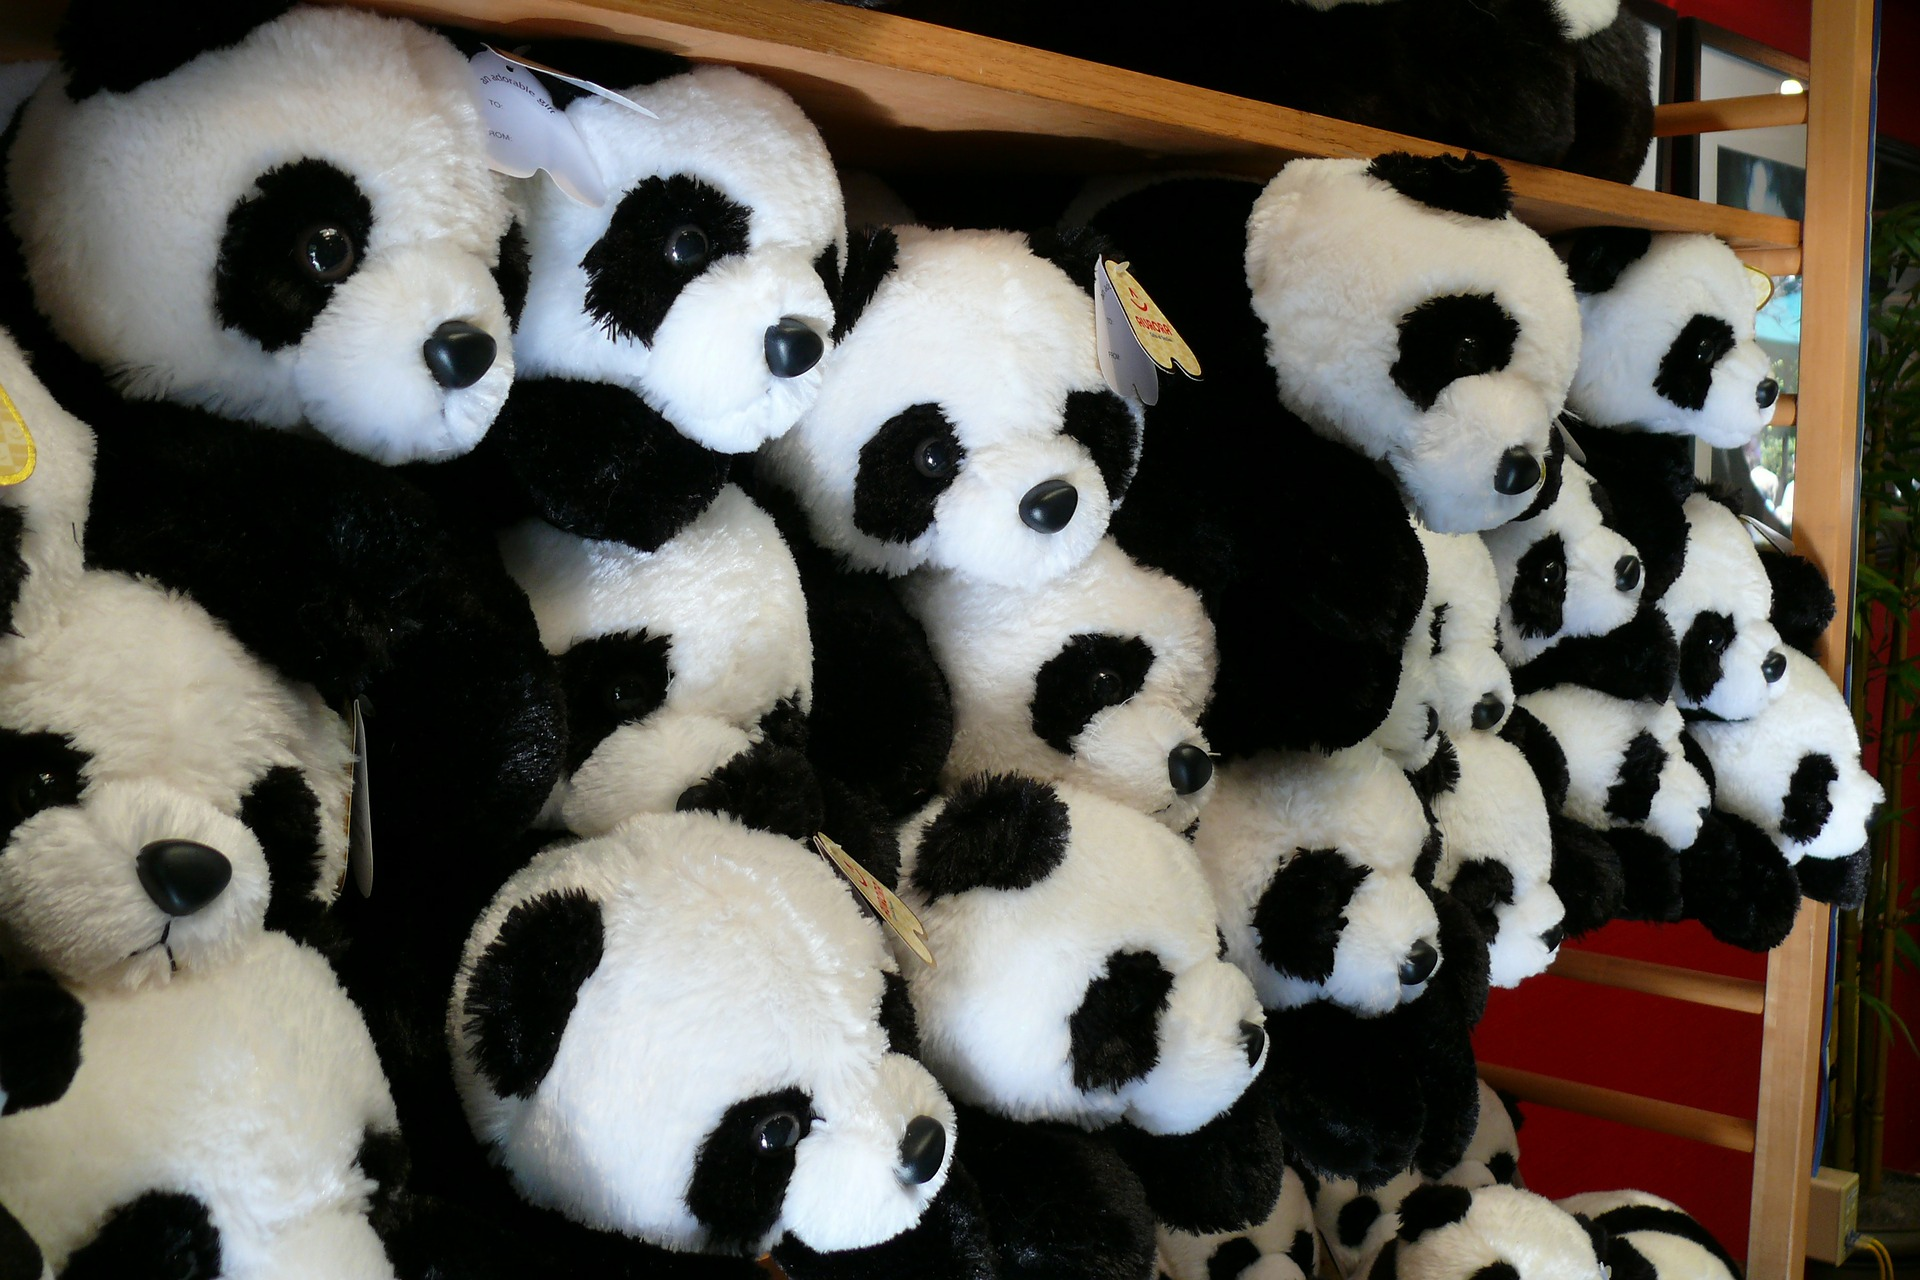 Stuffed Pandas At The San Diego Zoo.